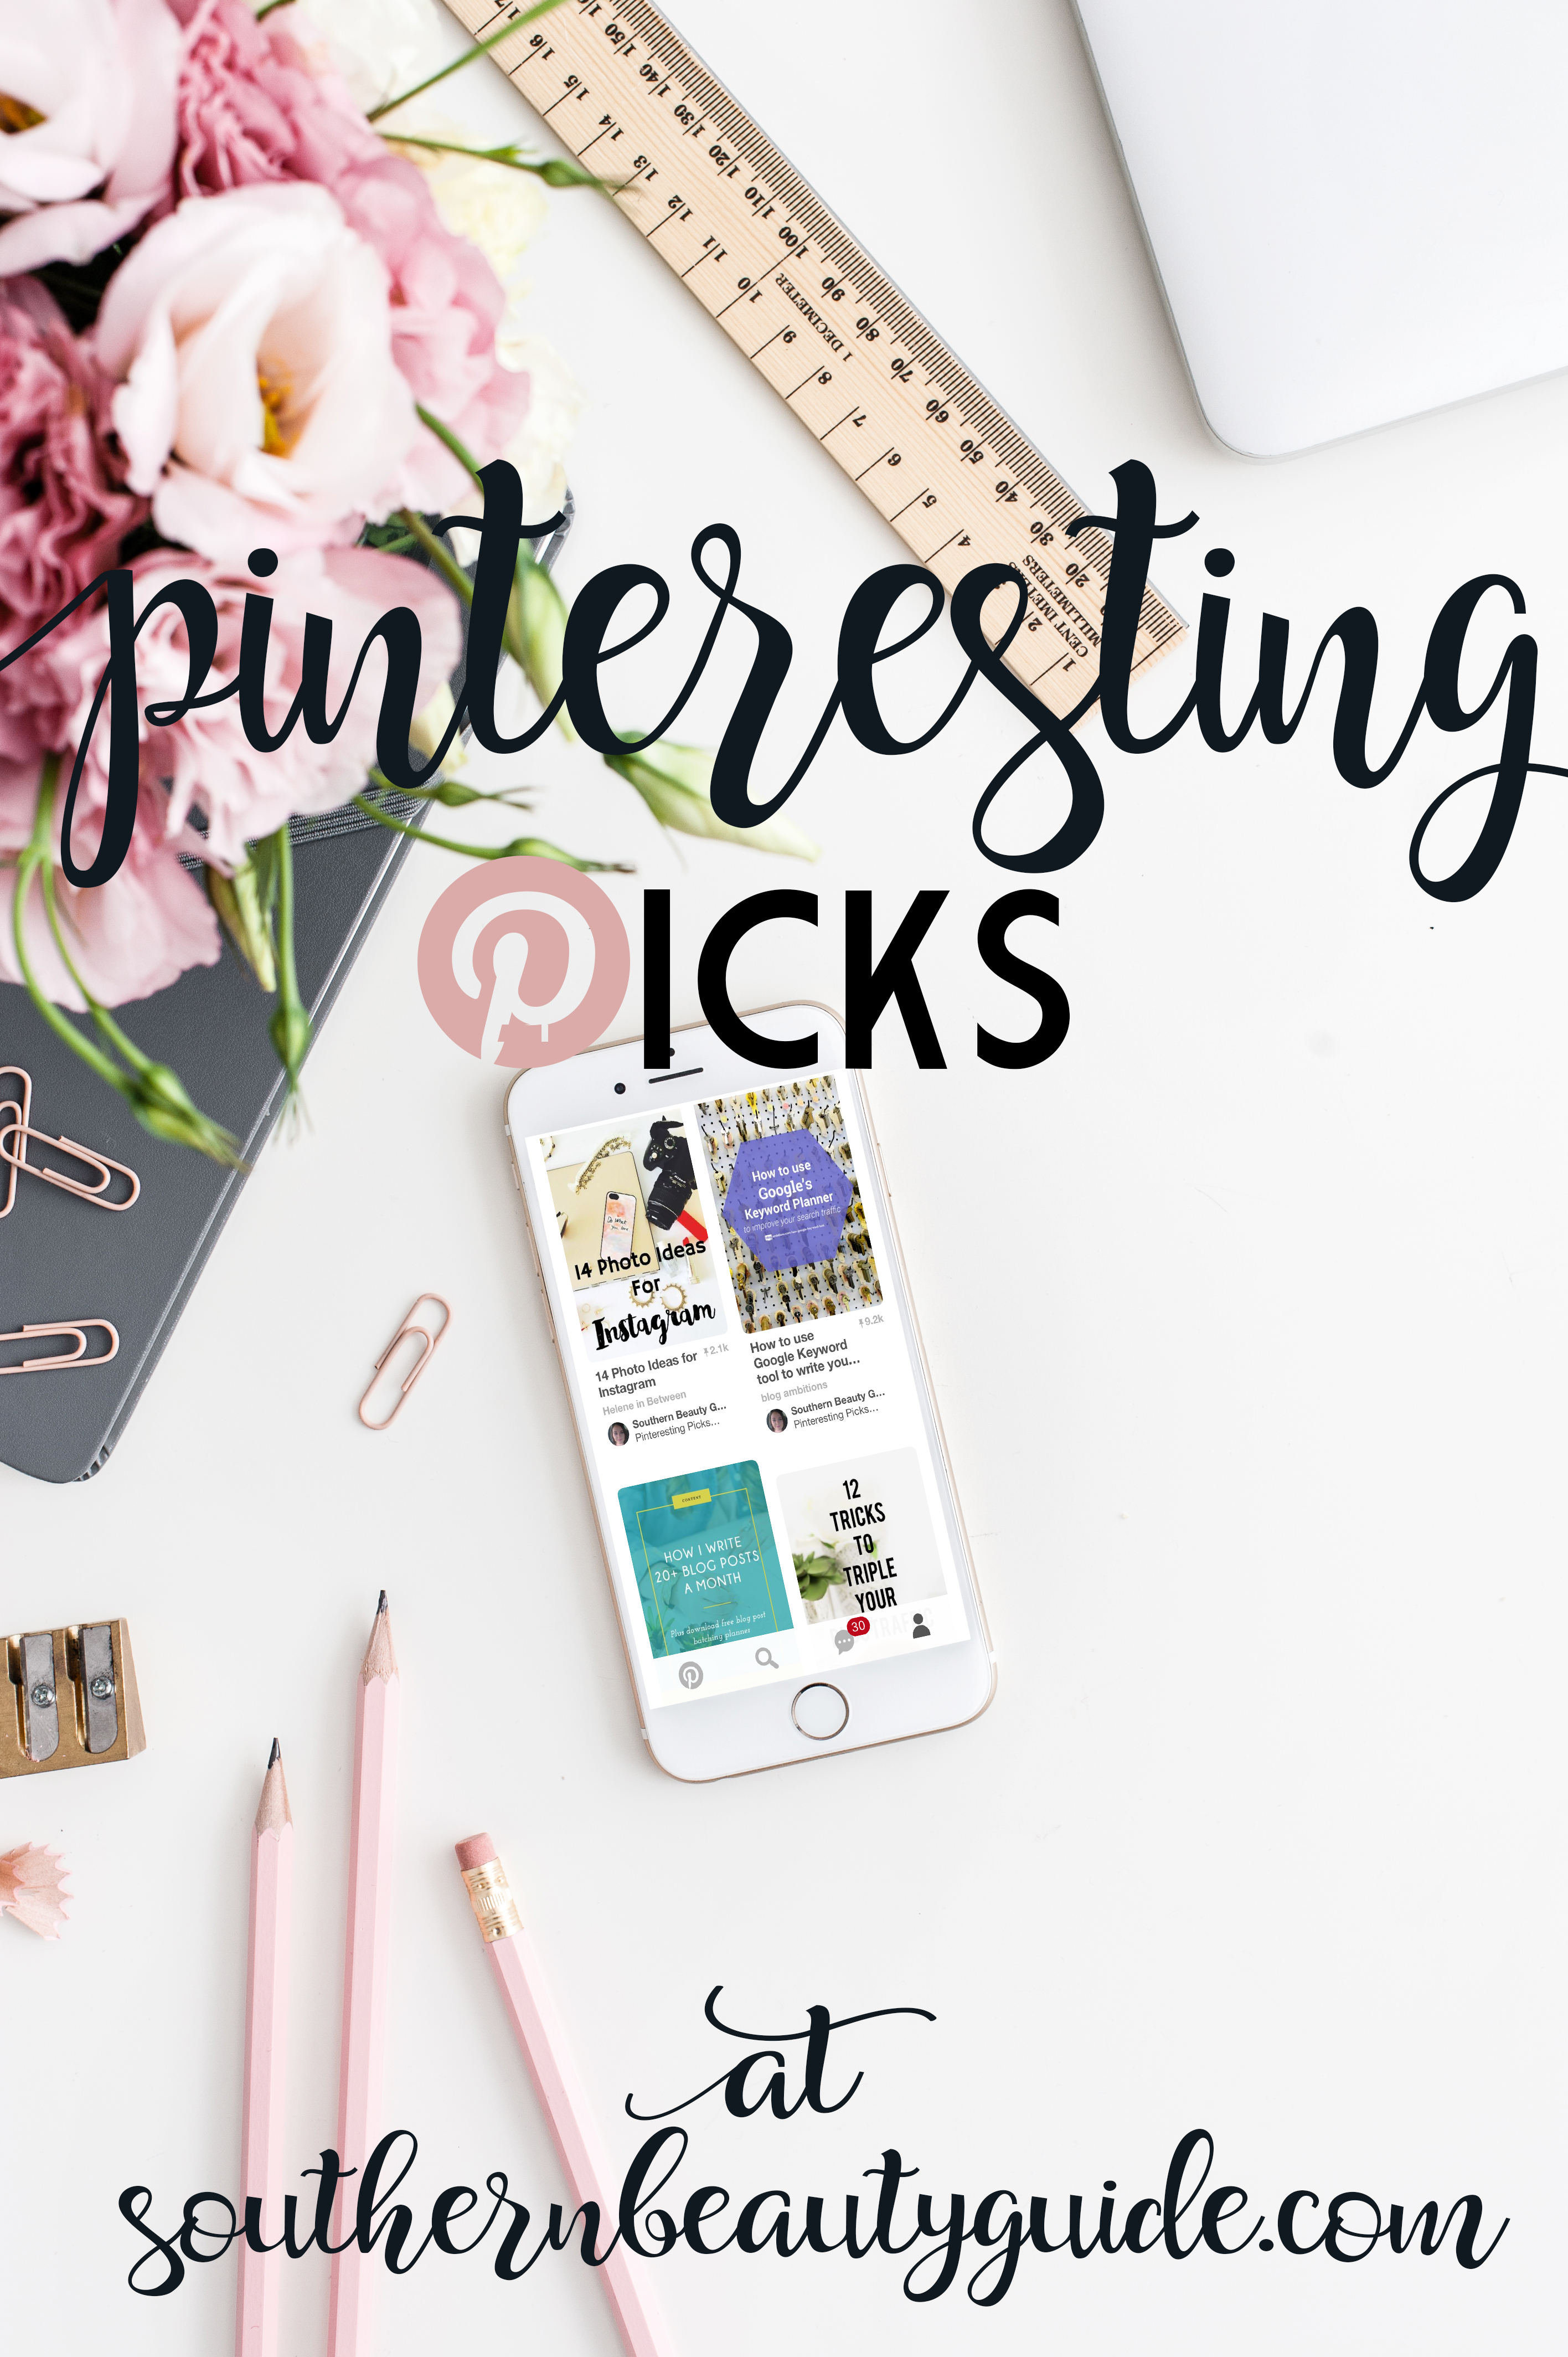 Pinteresting Picks Wednesday Blog Tips Post Ideas Southern Beauty Guide